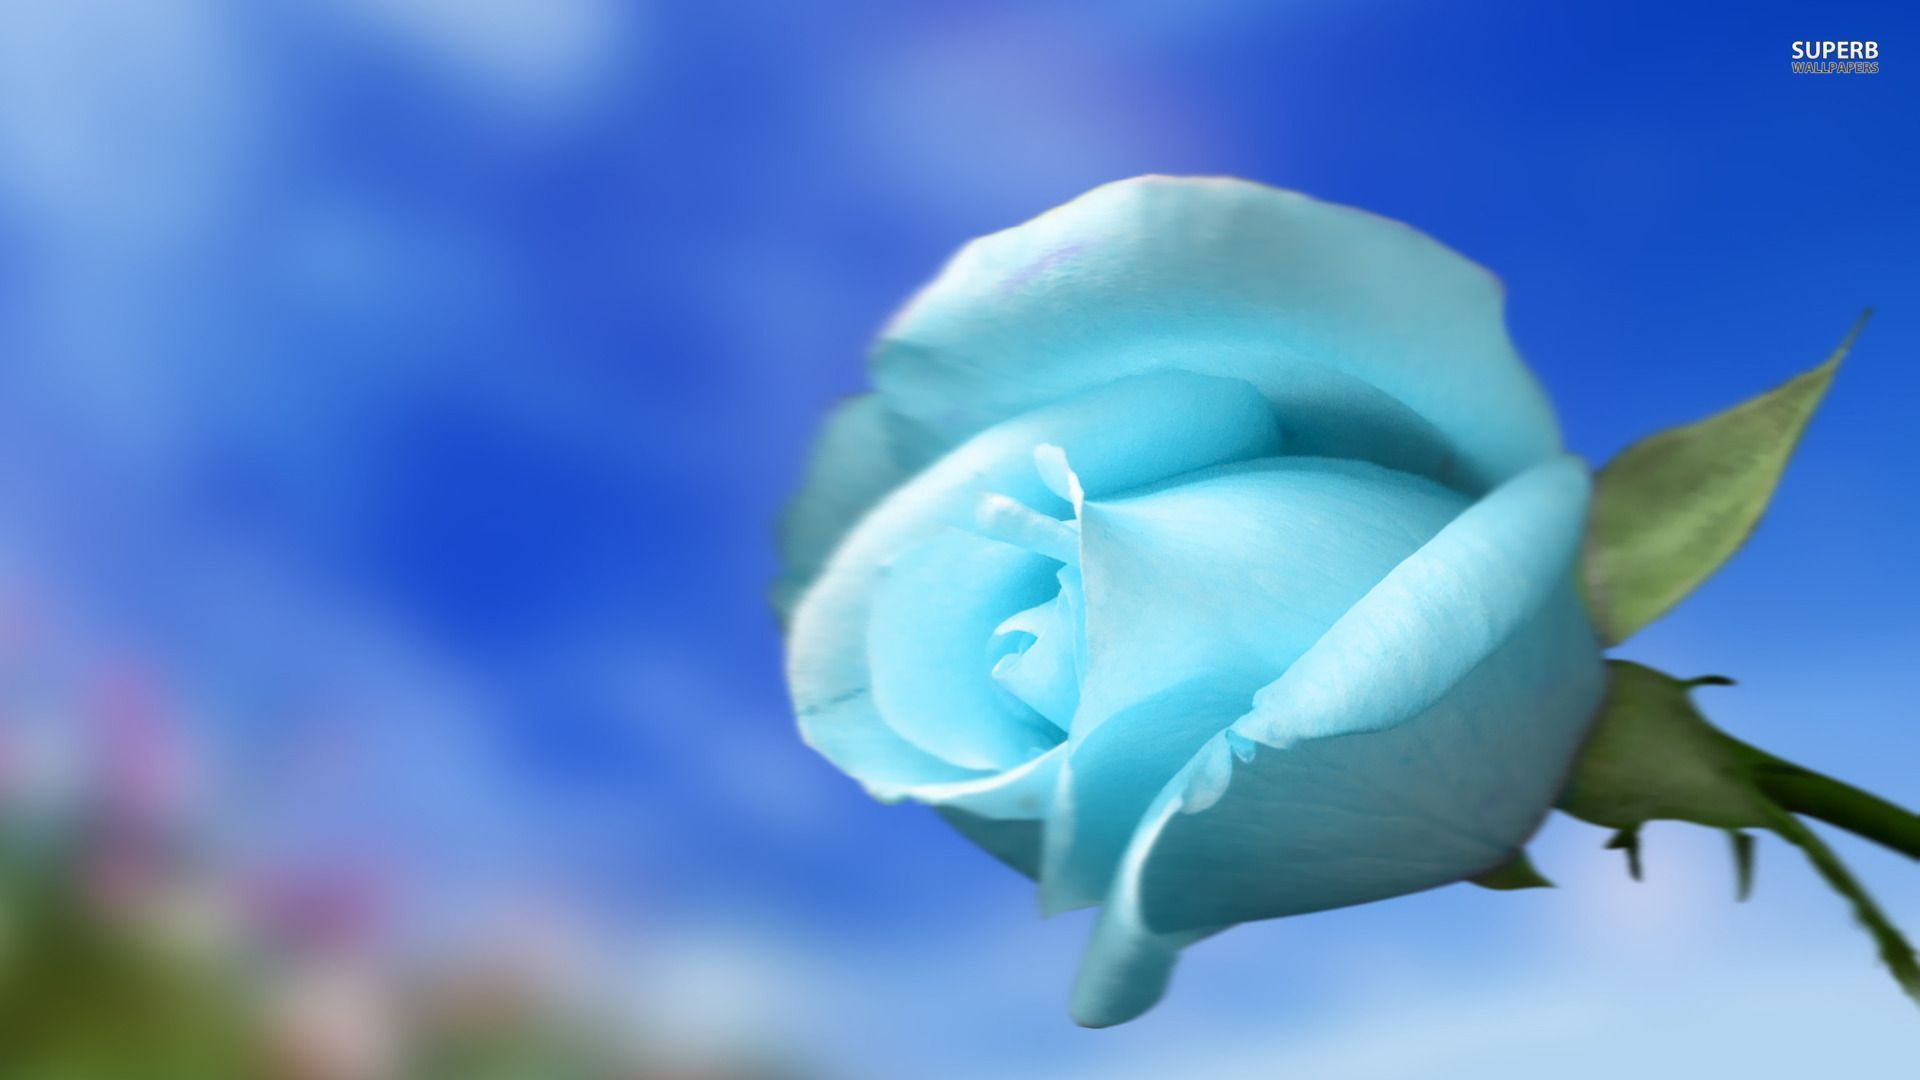 Sky Blue Wallpapers Wallpaper Cave White Flower Wallpaper Rose Flower Wallpaper Blue Roses Wallpaper